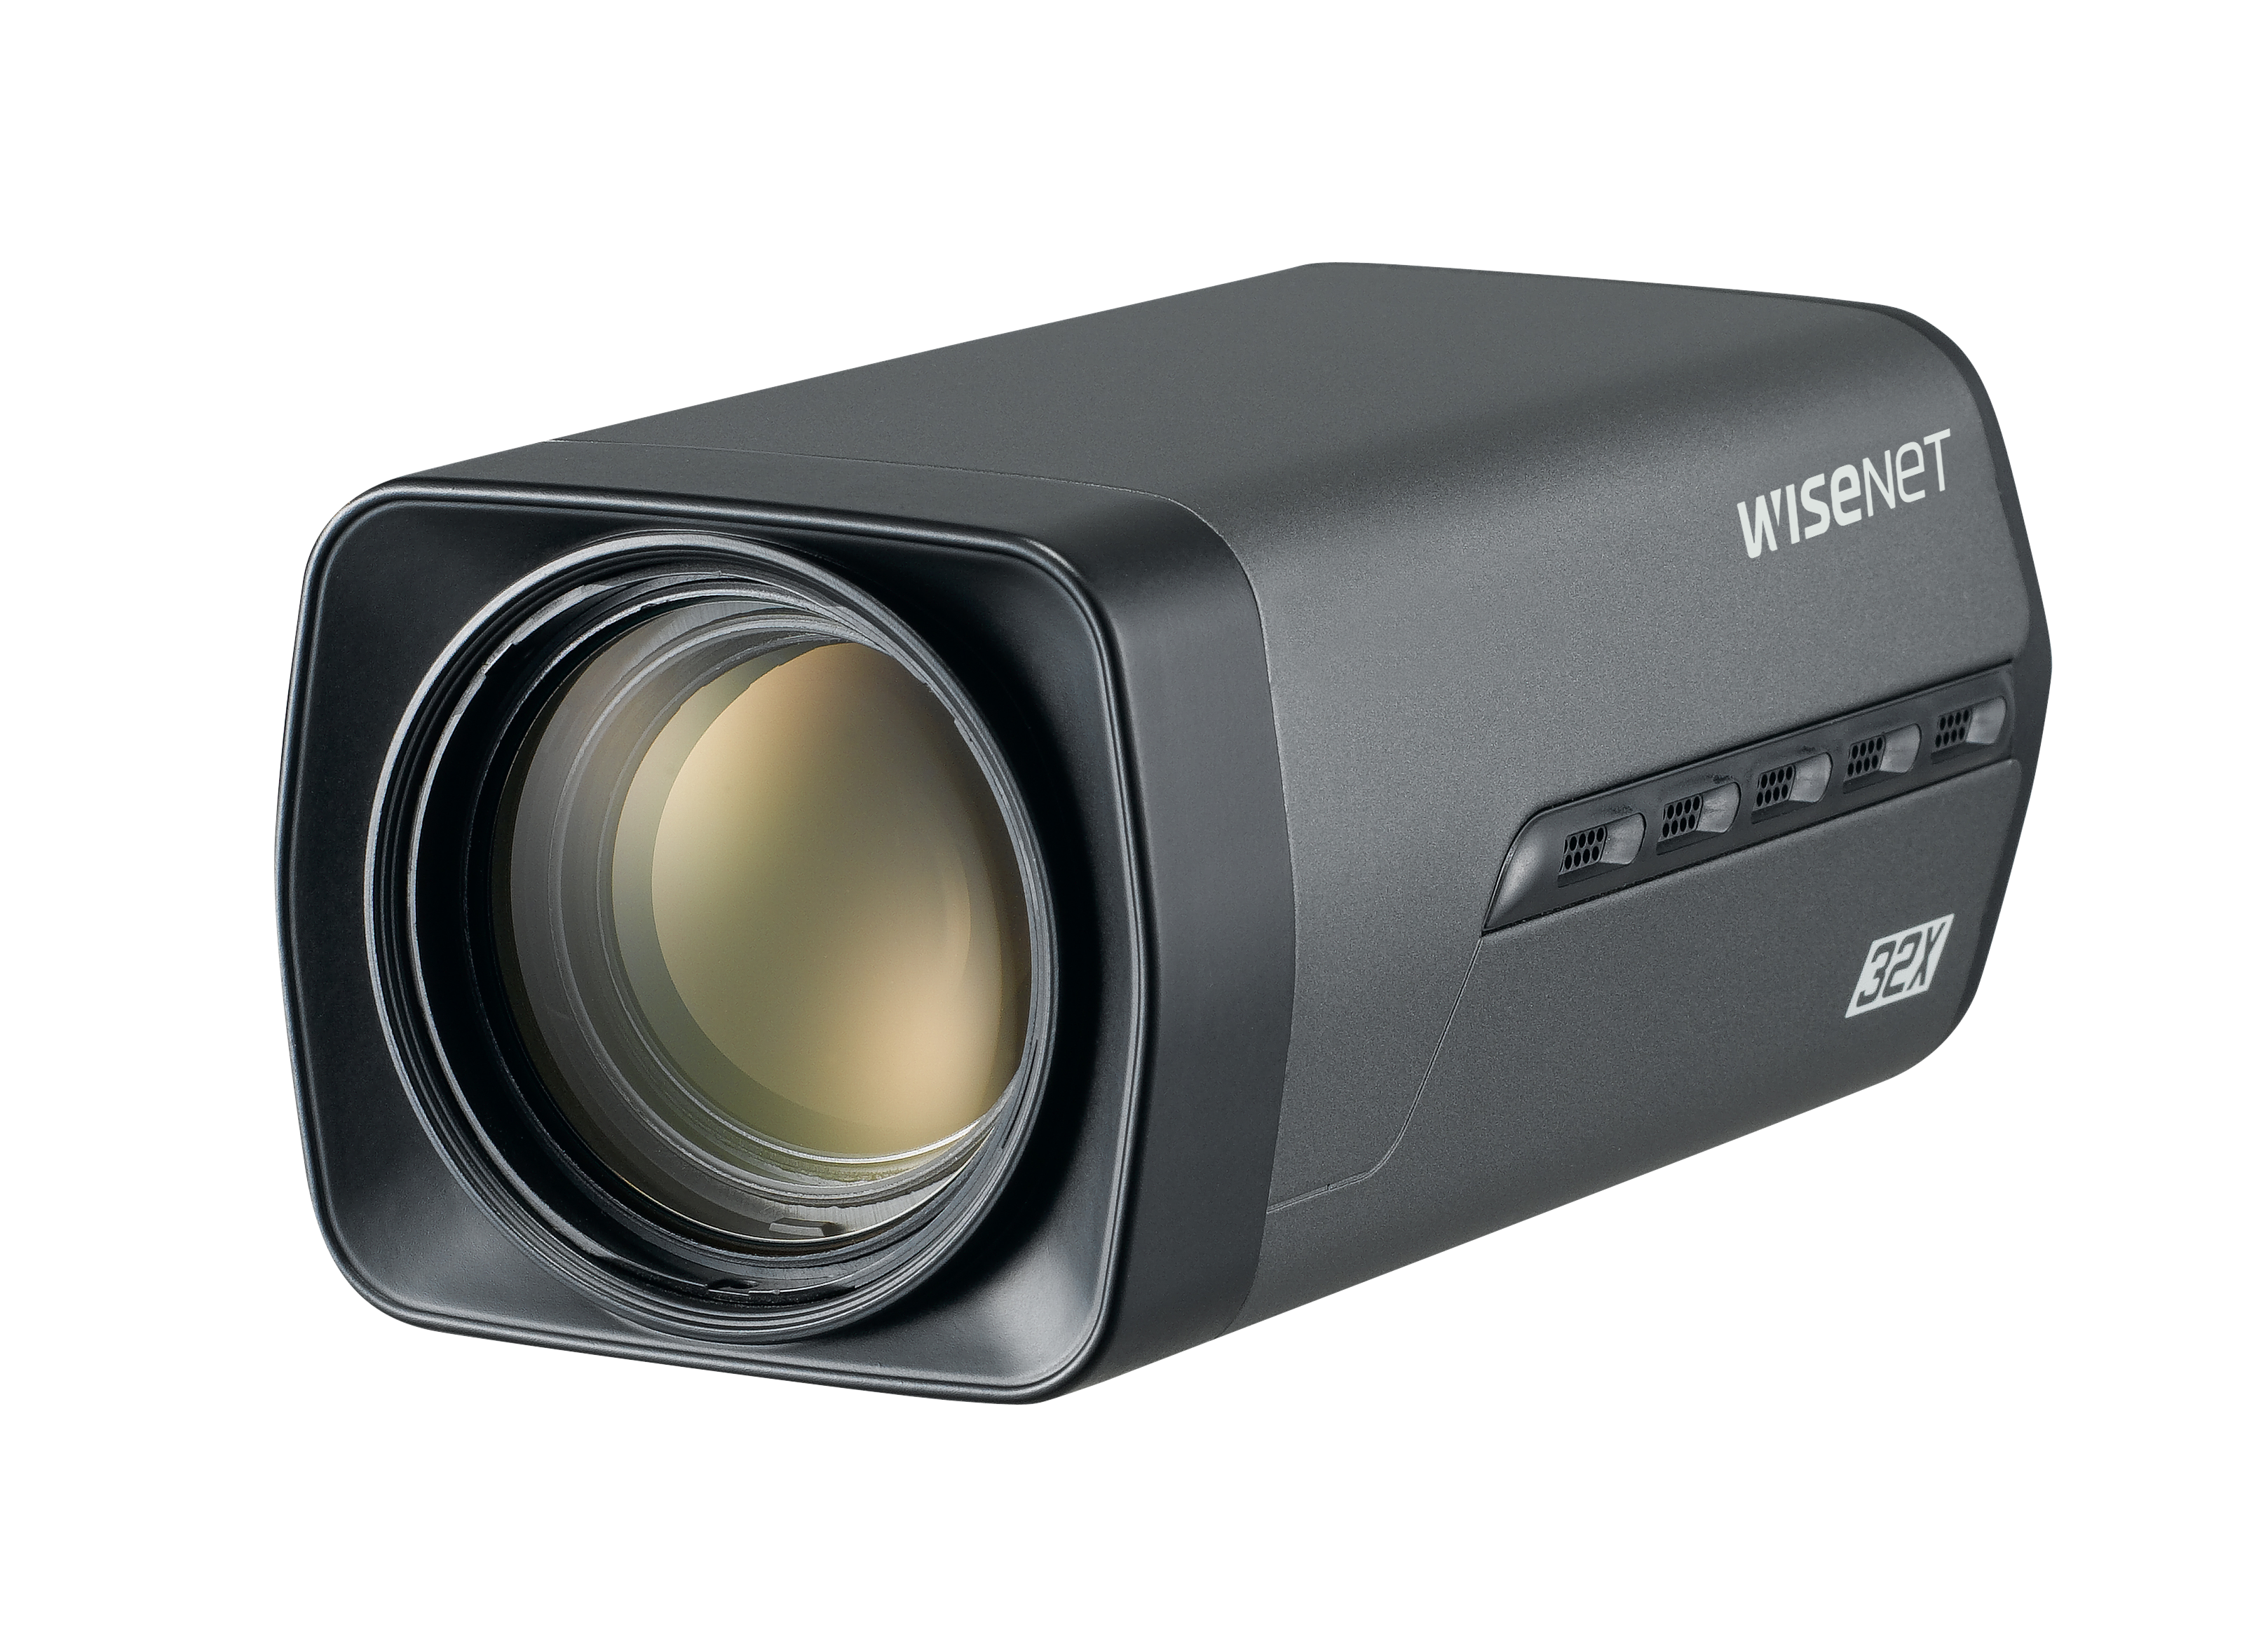 HCZ-6320 SAMSUNG Wisenet HD+ 2M zoom box, AHD or CVBS formats are available, true WDR (120dB), 32X optical zoom, RS485 /Coaxial Control, true D/N, 24VAC/12VDC ************************* SPECIAL ORDER ITEM NO RETURNS OR SUBJECT TO RESTOCK FEE *************************